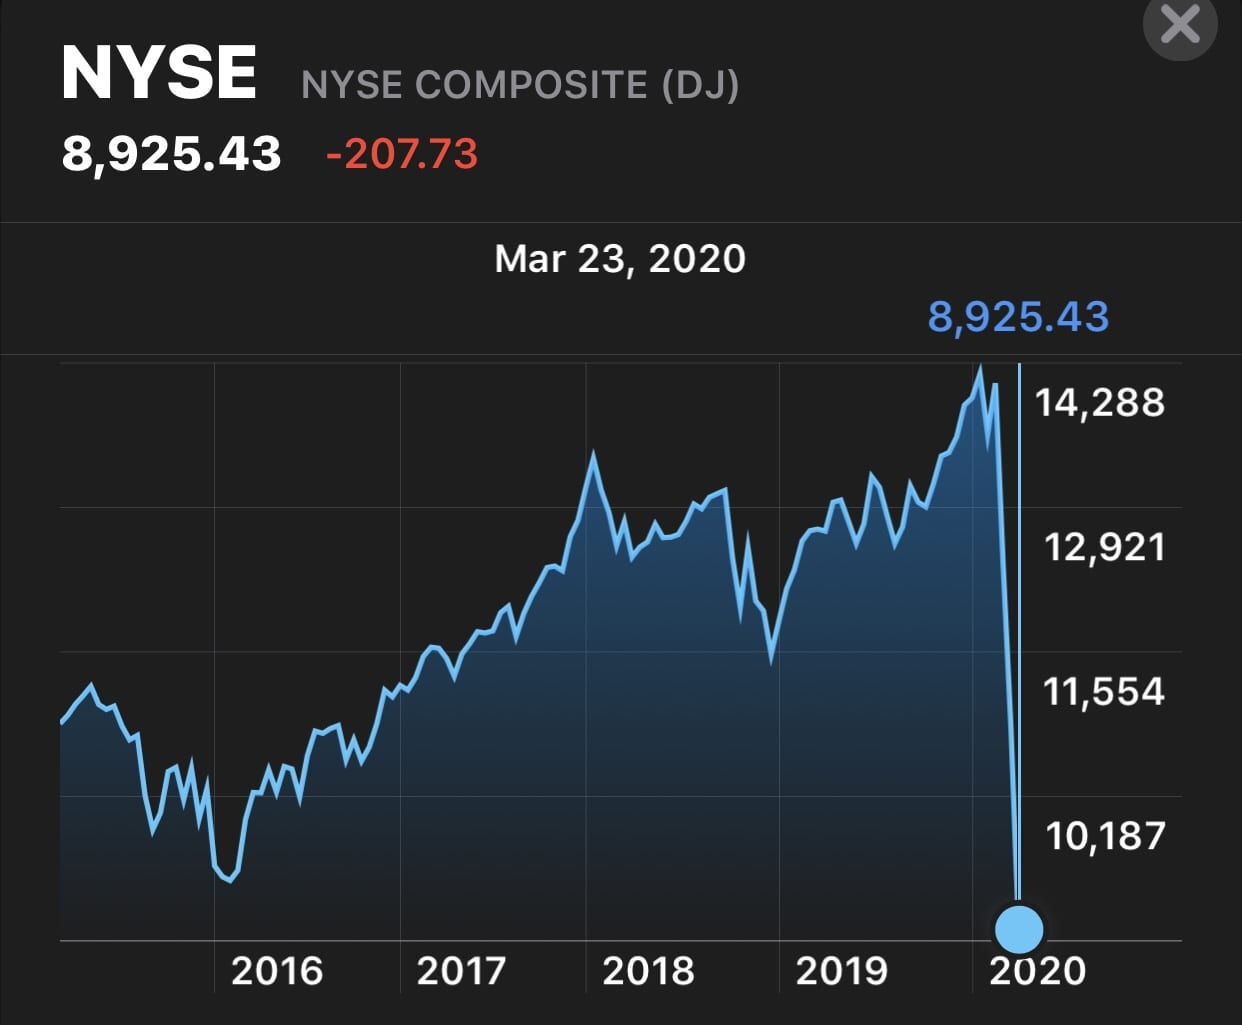 The Covid-19 virus 🦠 sends the stock market tumbling. How will we survive? 1